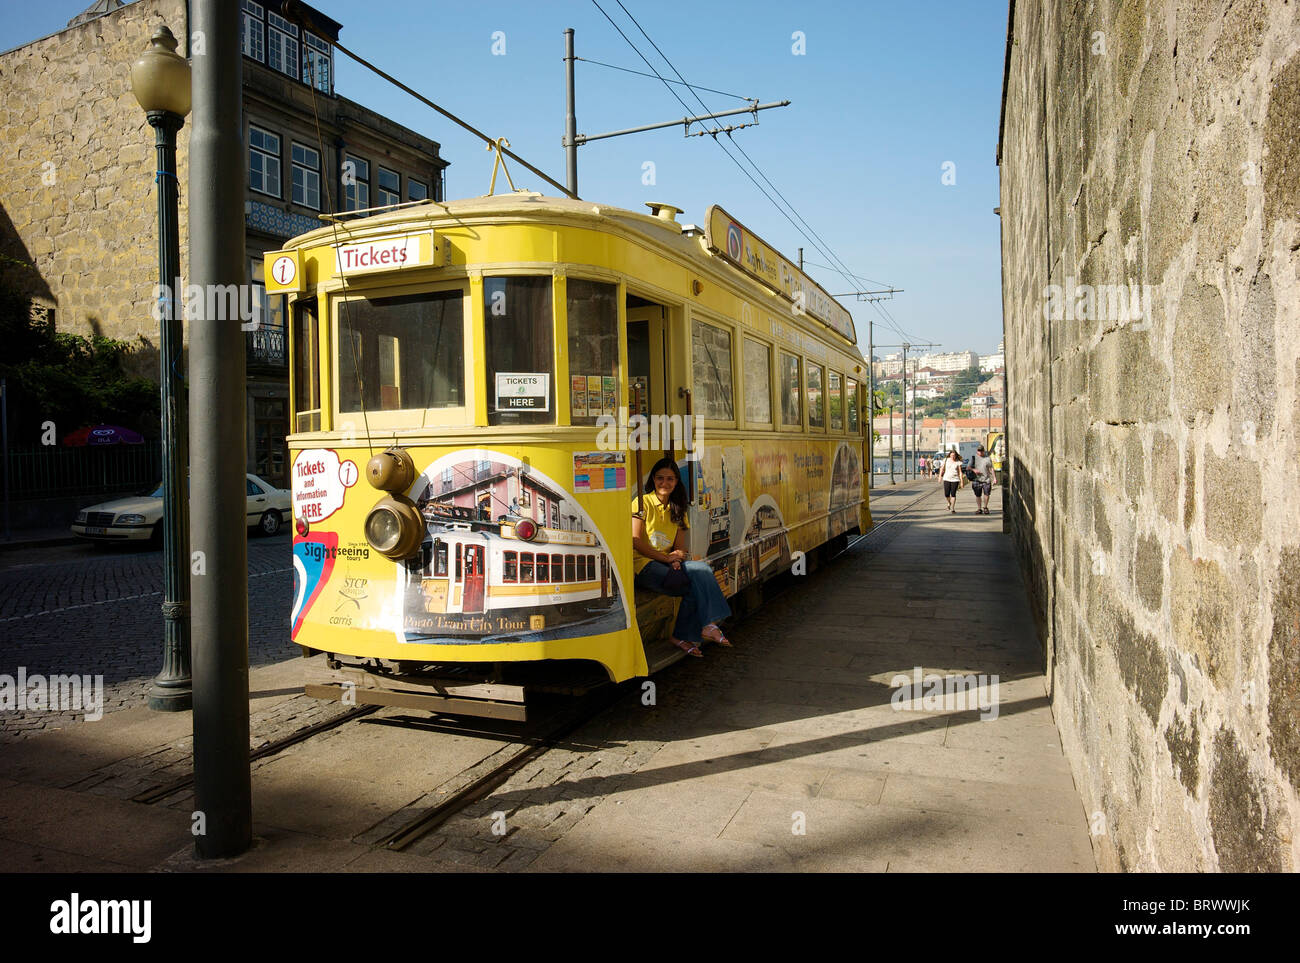 Ticket sales girl sits on the steps of a yellow tram which is used as the ticket sales office in Porto. Stock Photo